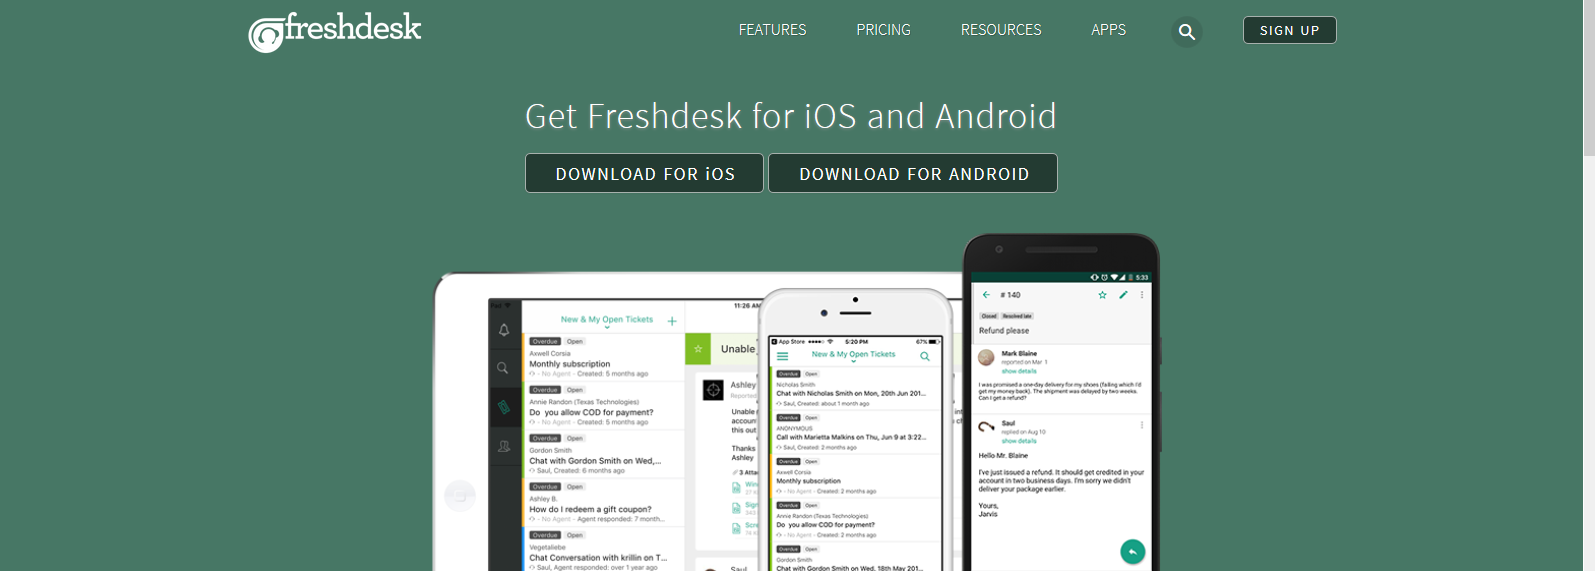 Freshdesk Mobile Apps